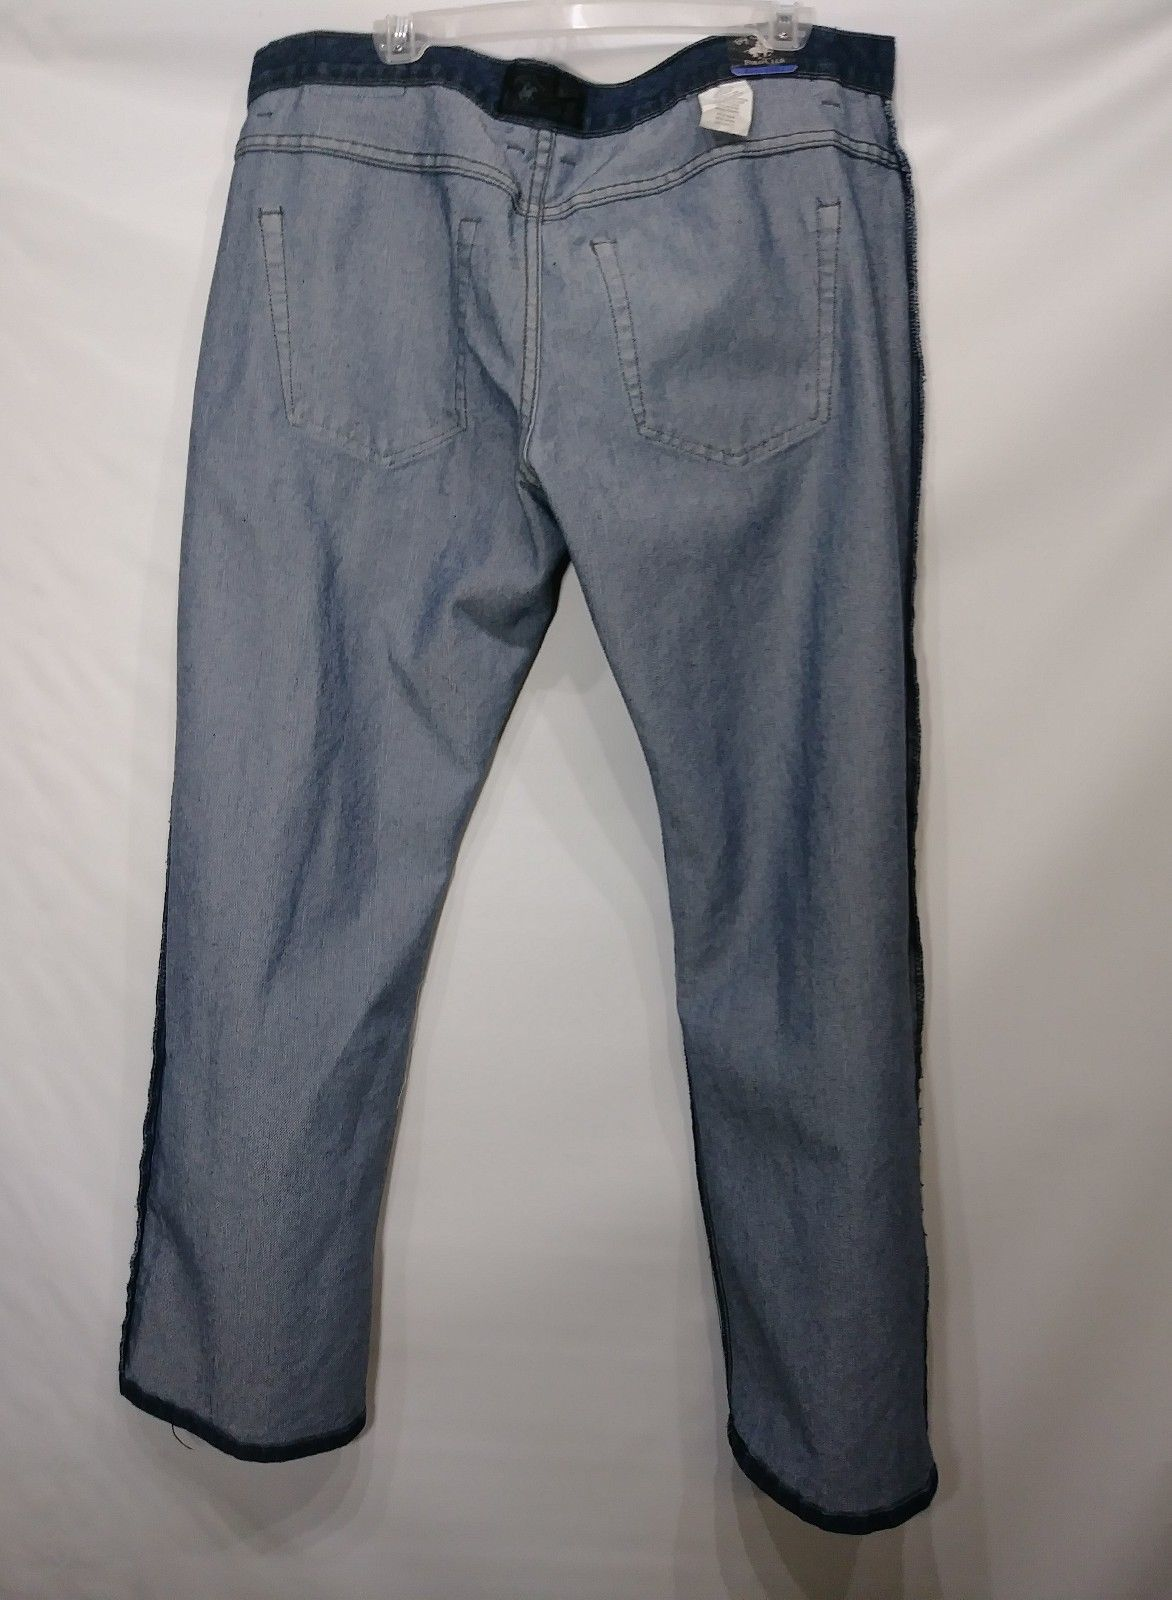 BEVERLY HILLS POLO CLUB MEN'S DENIM BLUE JEANS SIZE 38 X 32L MSRP $46